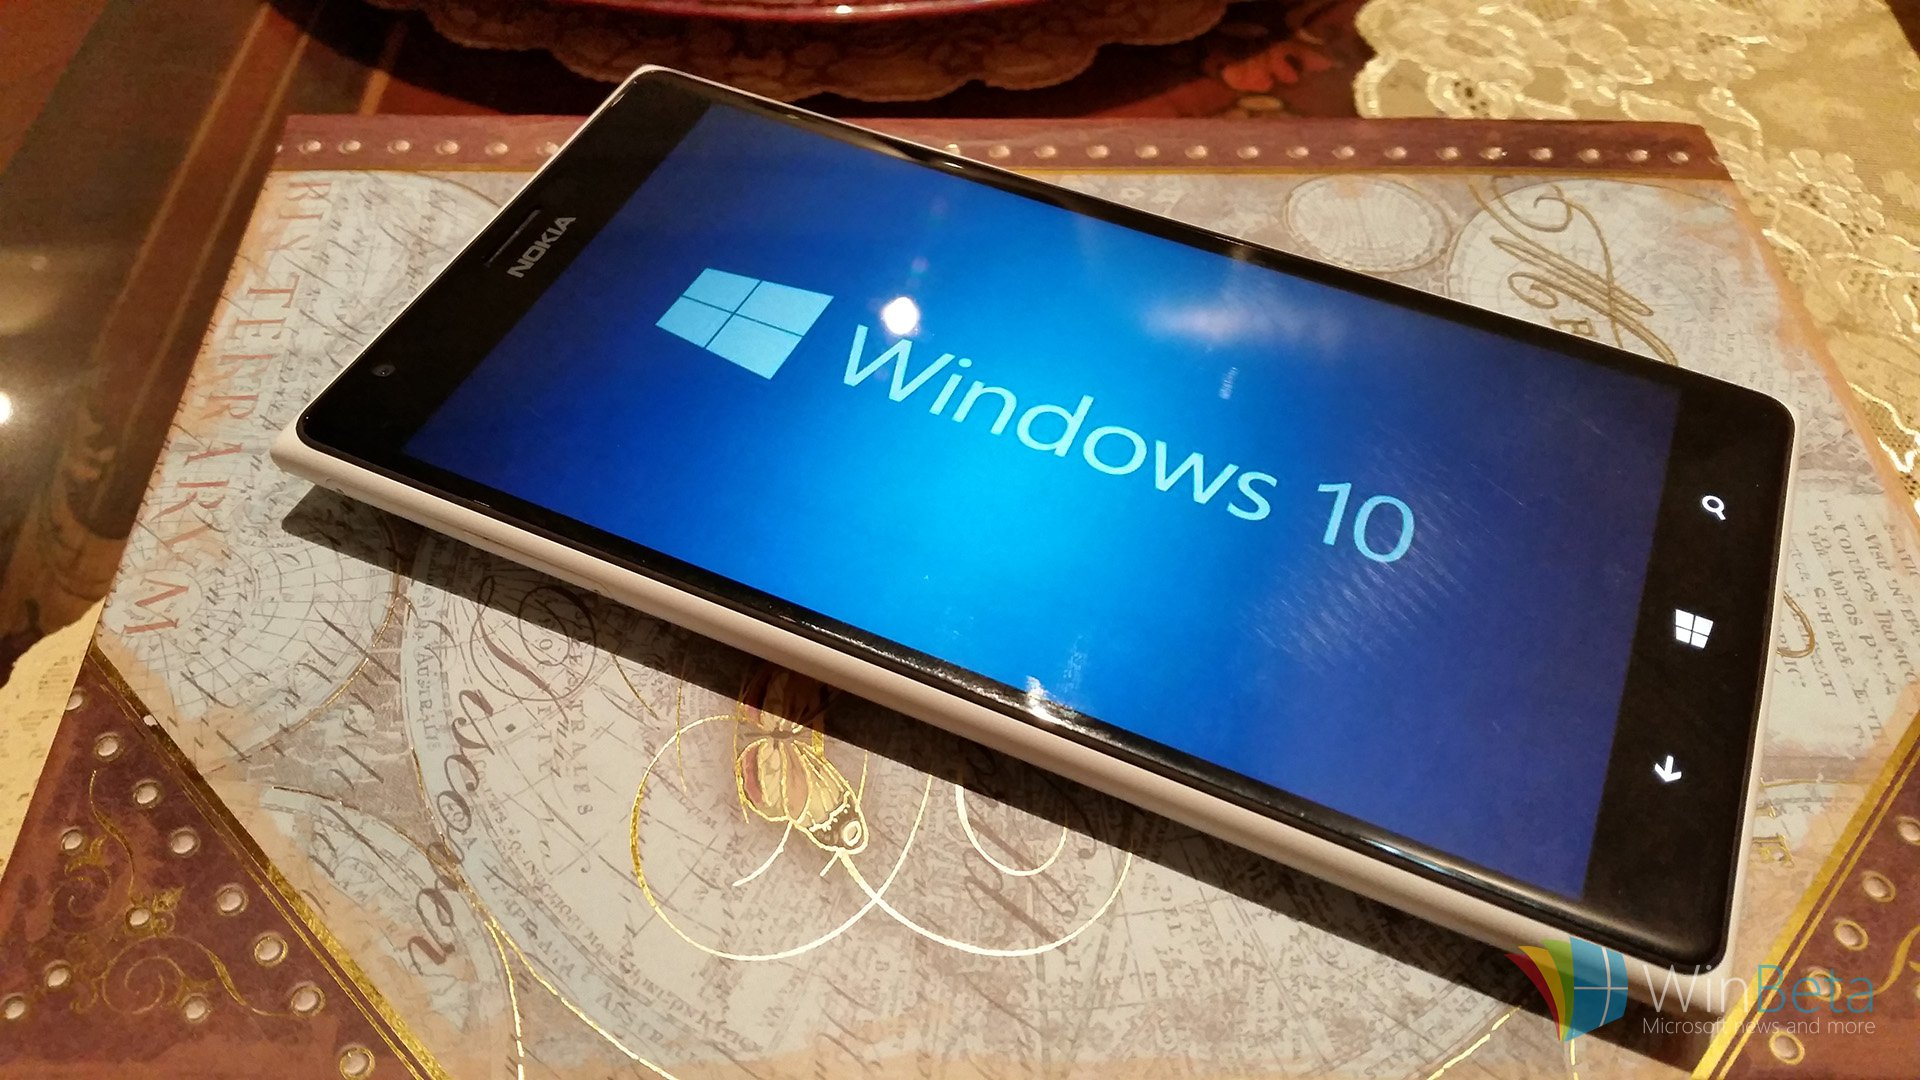 Windows 10 mobile pic